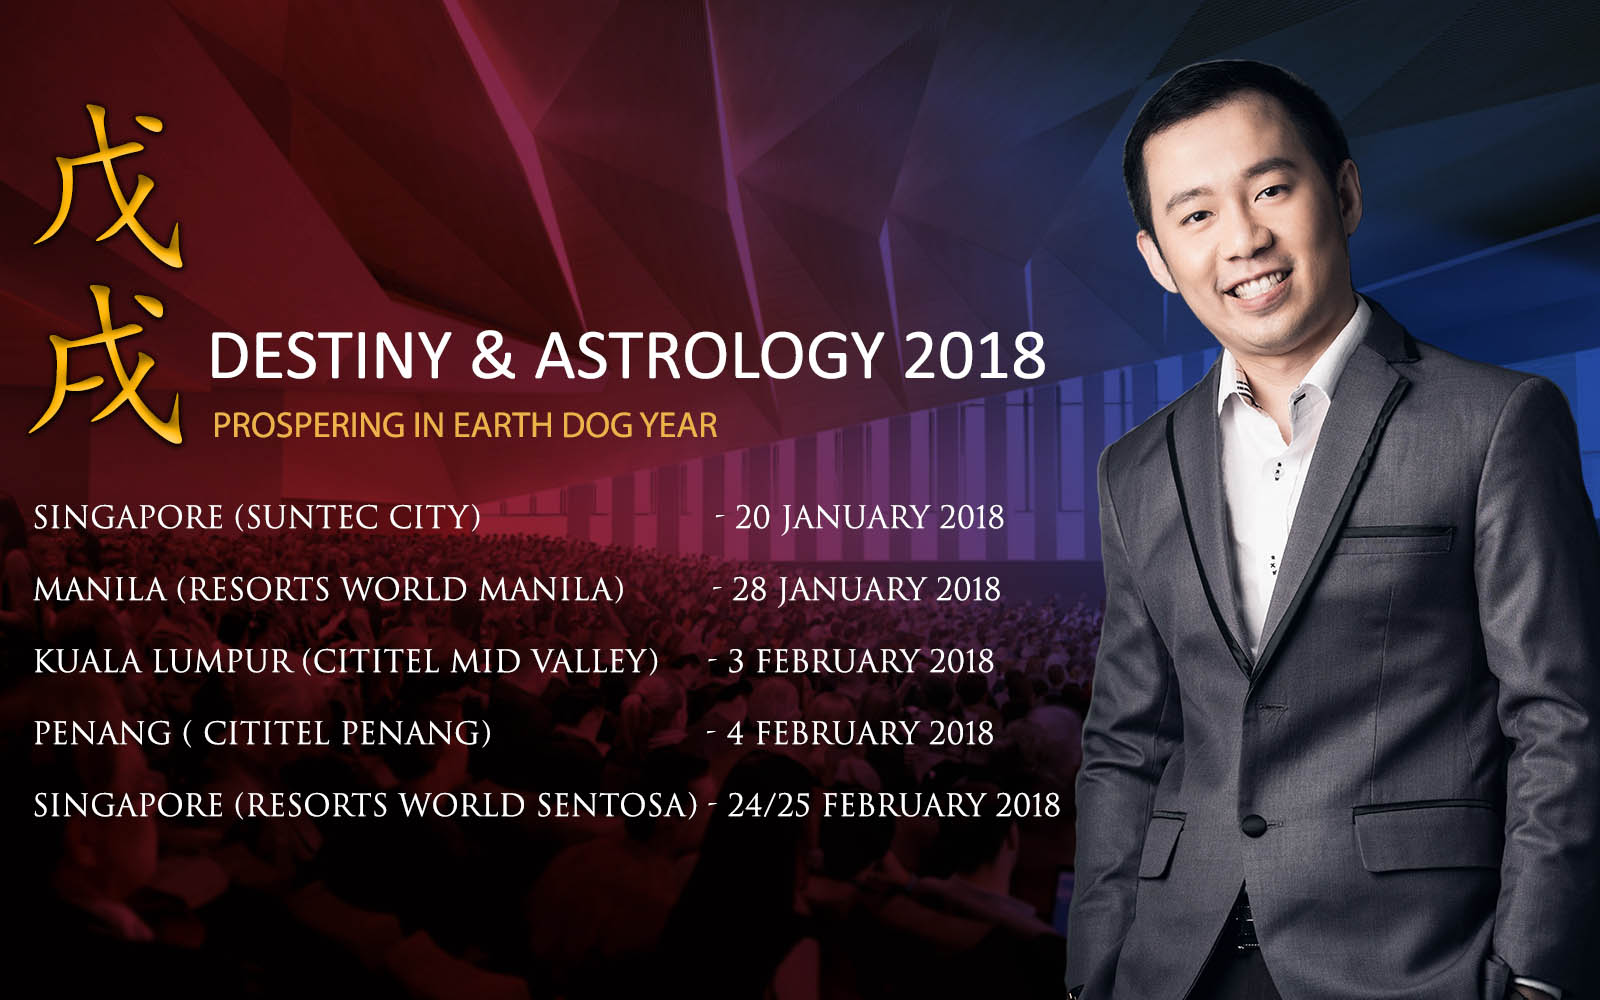 destiny and astrology 2018